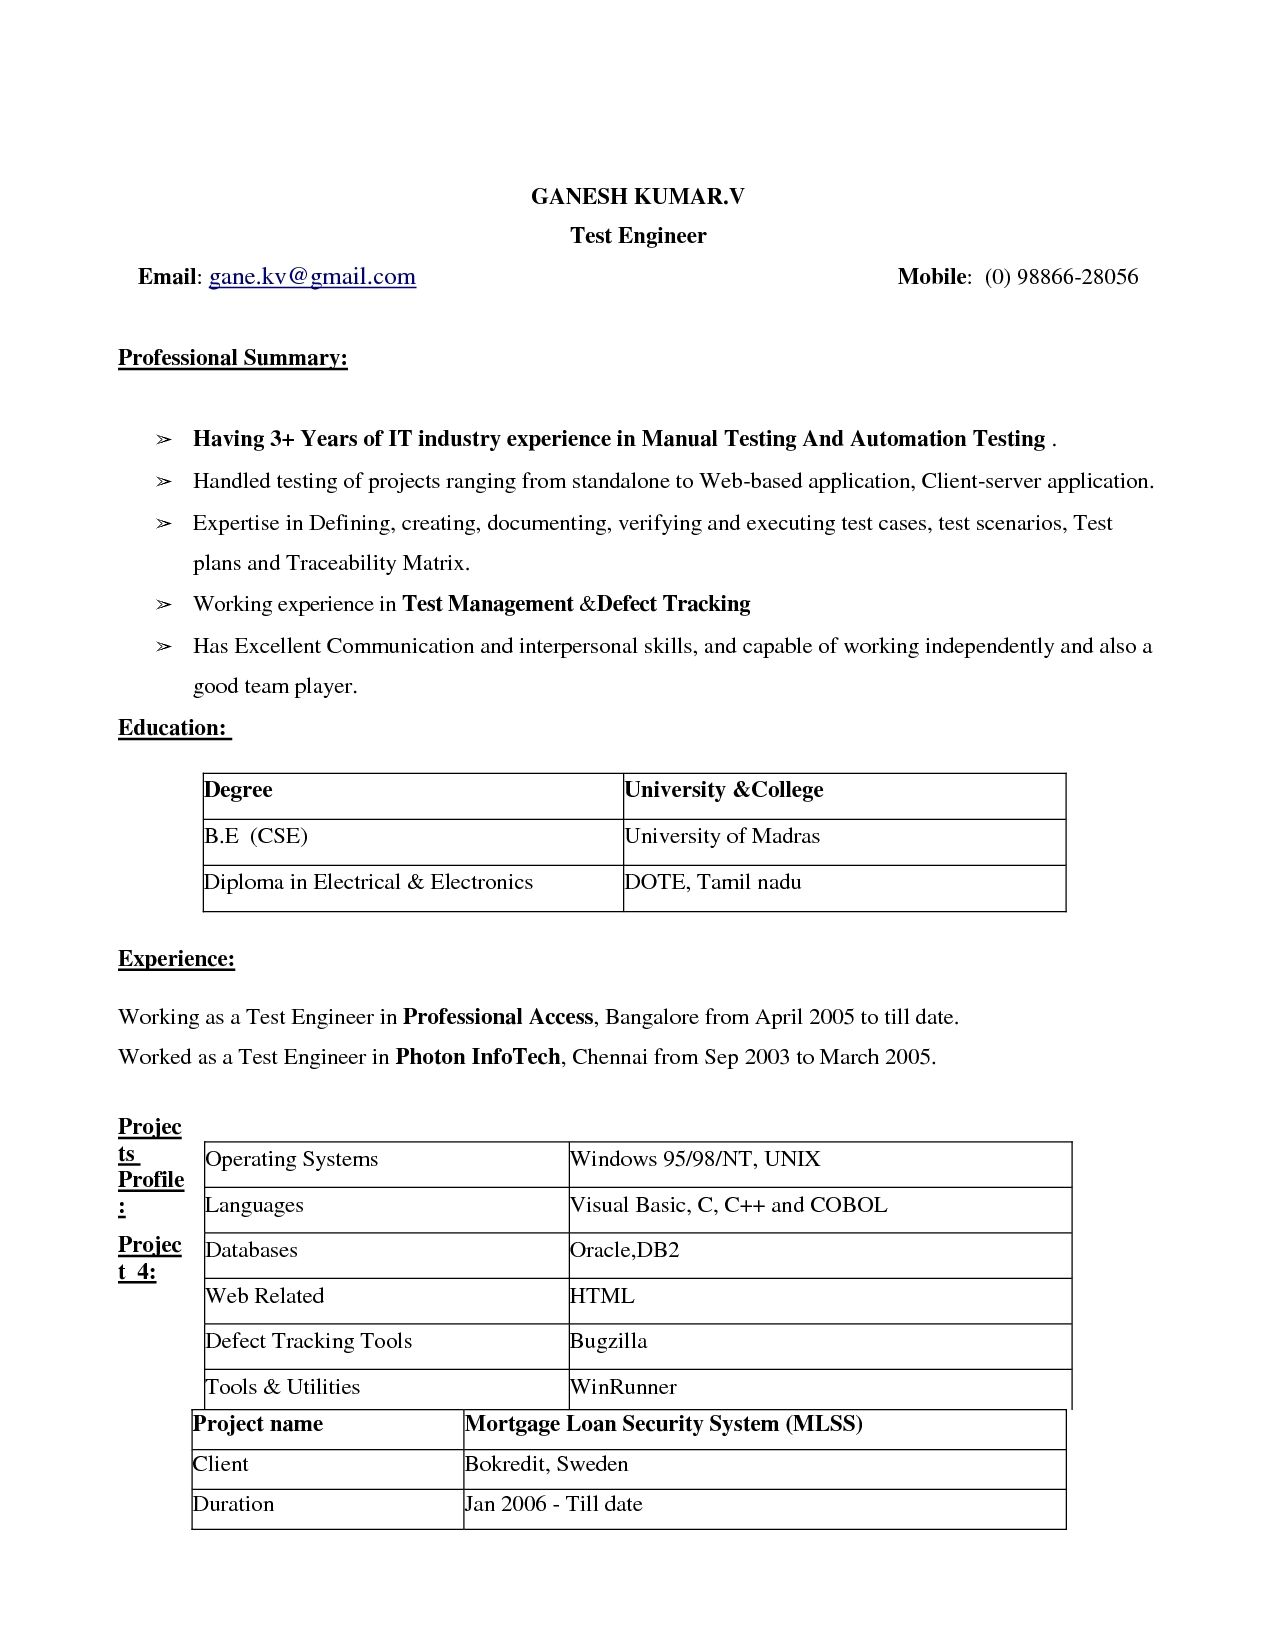 Resumes Free Resume Templates  And Best Action Words Best